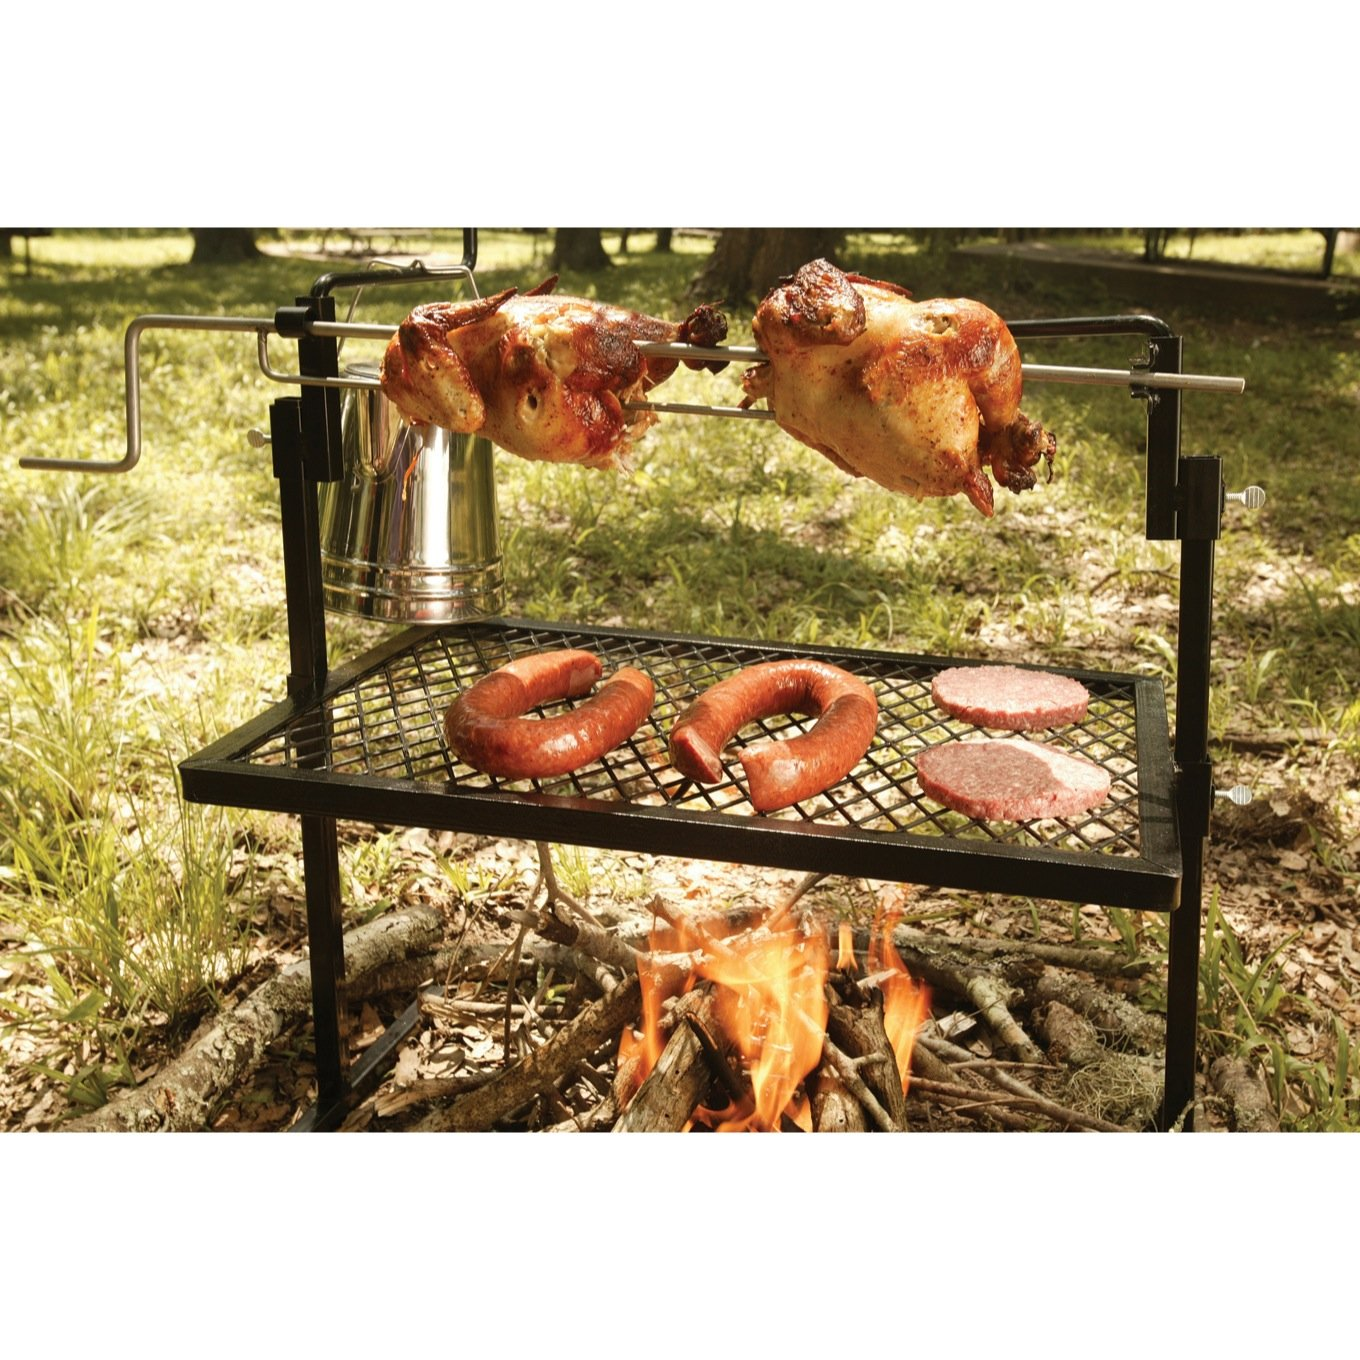 Bbq Grill Rotisserie Spit Outdoor Cooking Barbecue